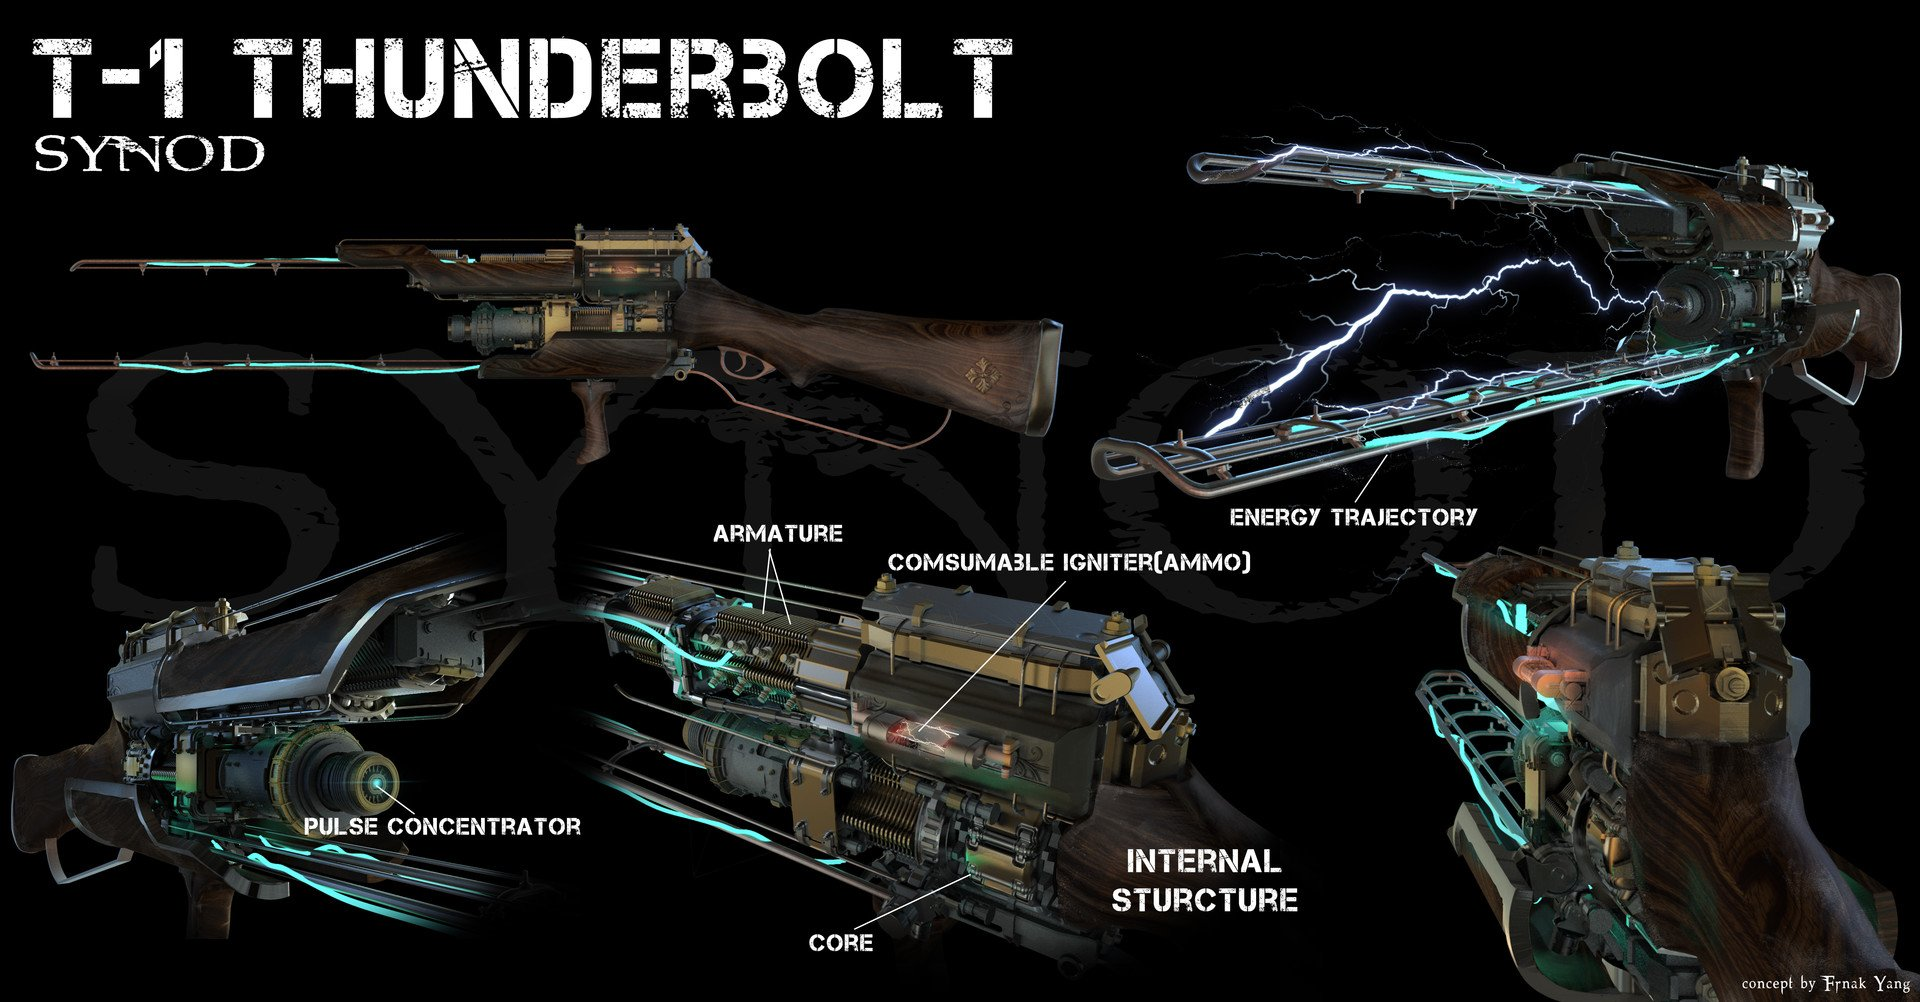 T-1 Thunderbolt Concept by Frank Yang.